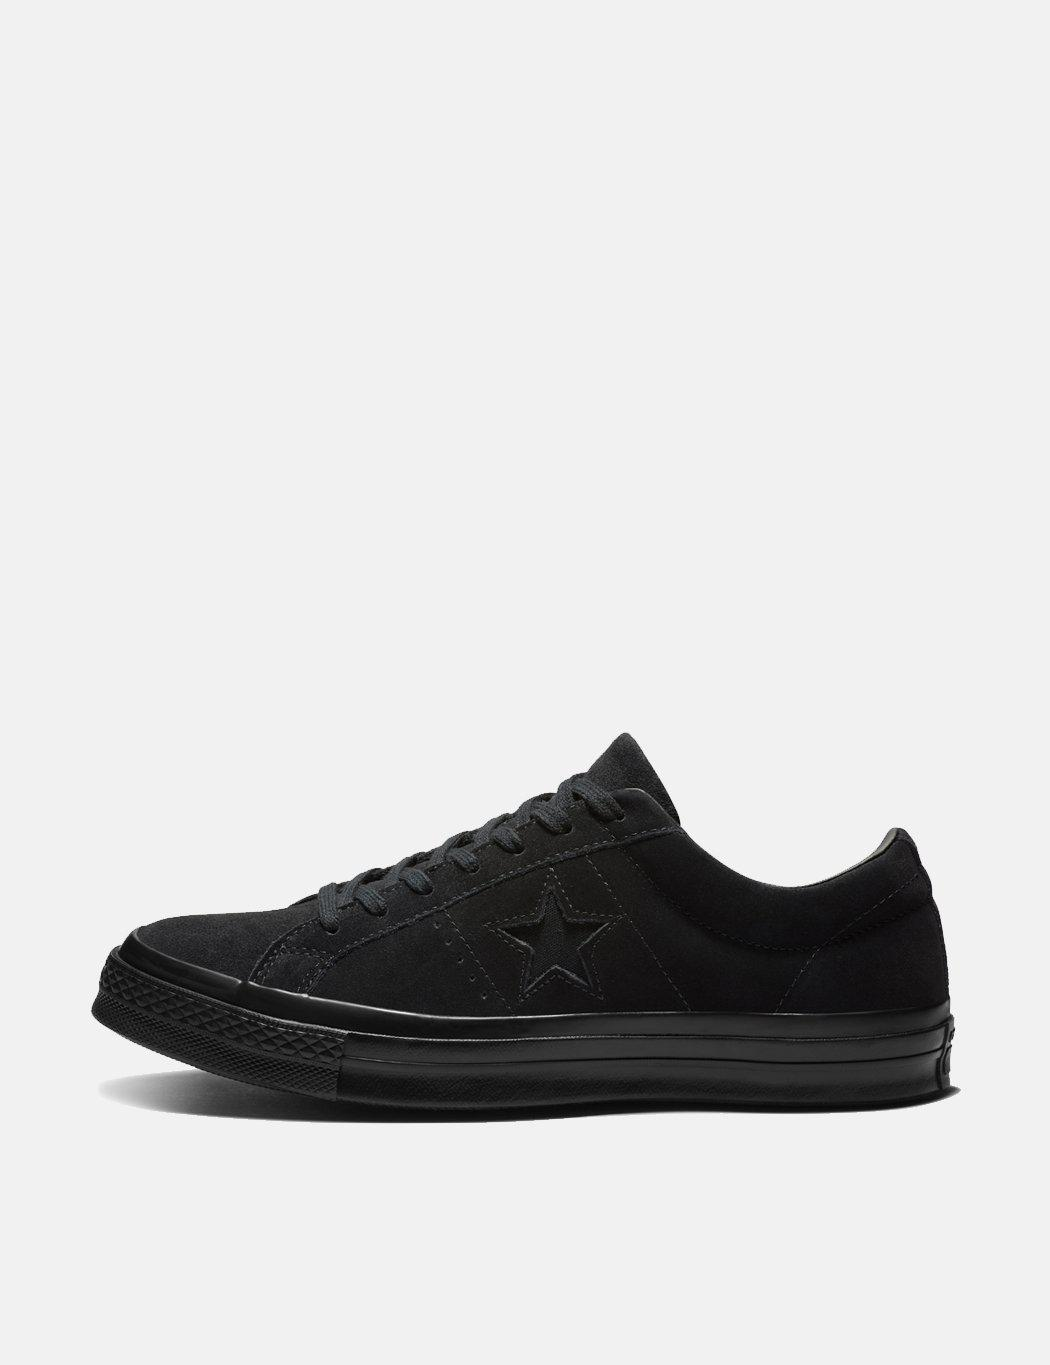 Converse One Star Ox Low Suede (162950c) in Black for Men - Save 78% - Lyst d6401036e